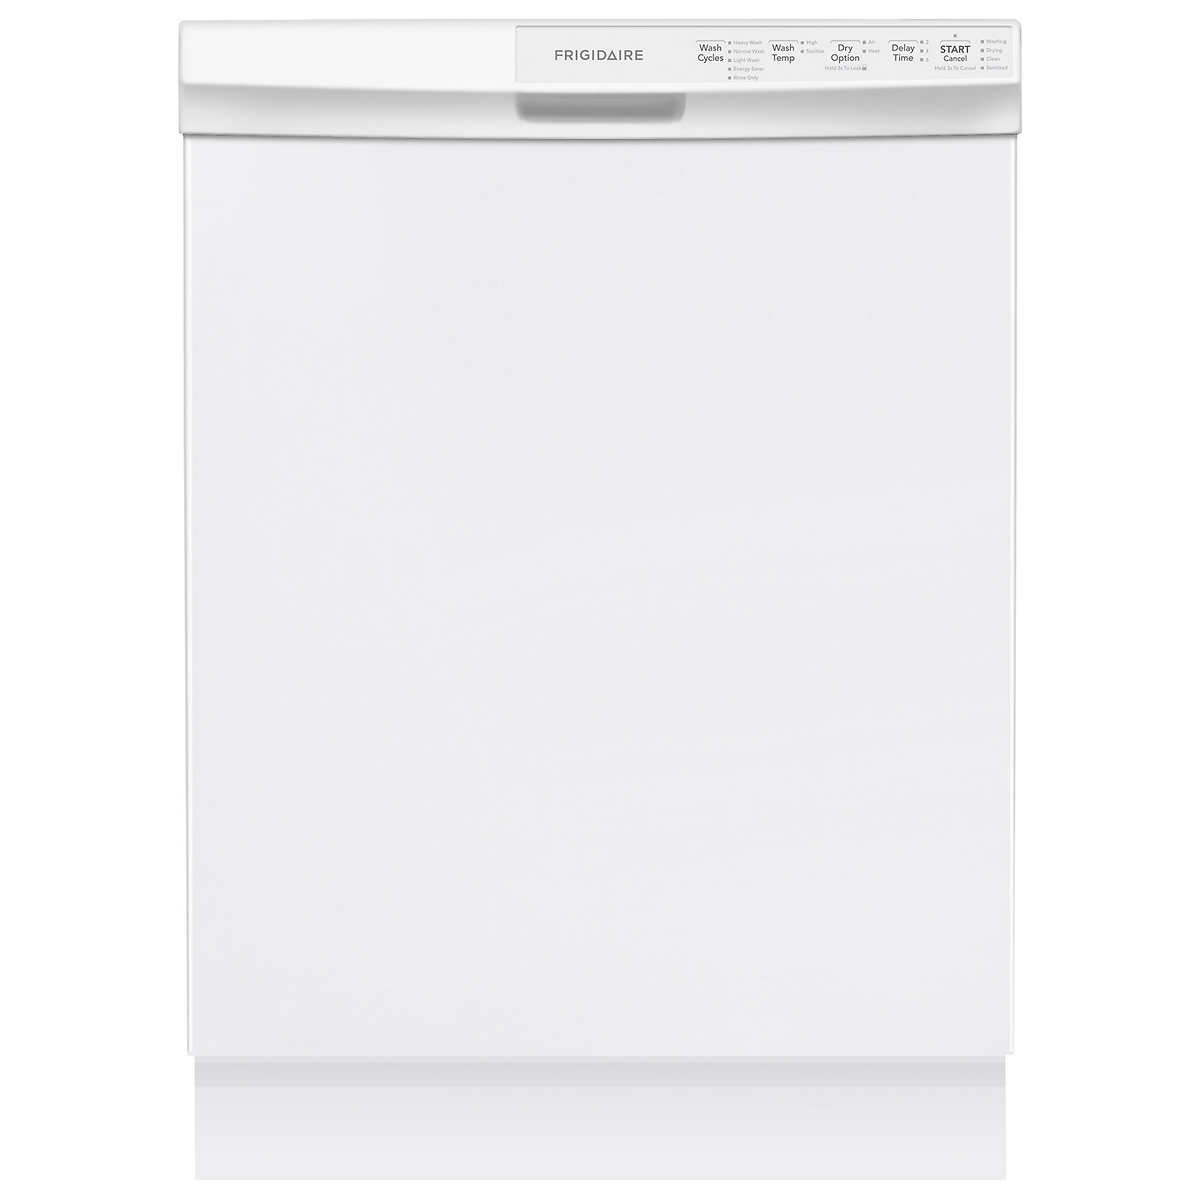 Whirlpool white ice costco canada - Built In Dishwasher With Spacewise Silverware Basket White